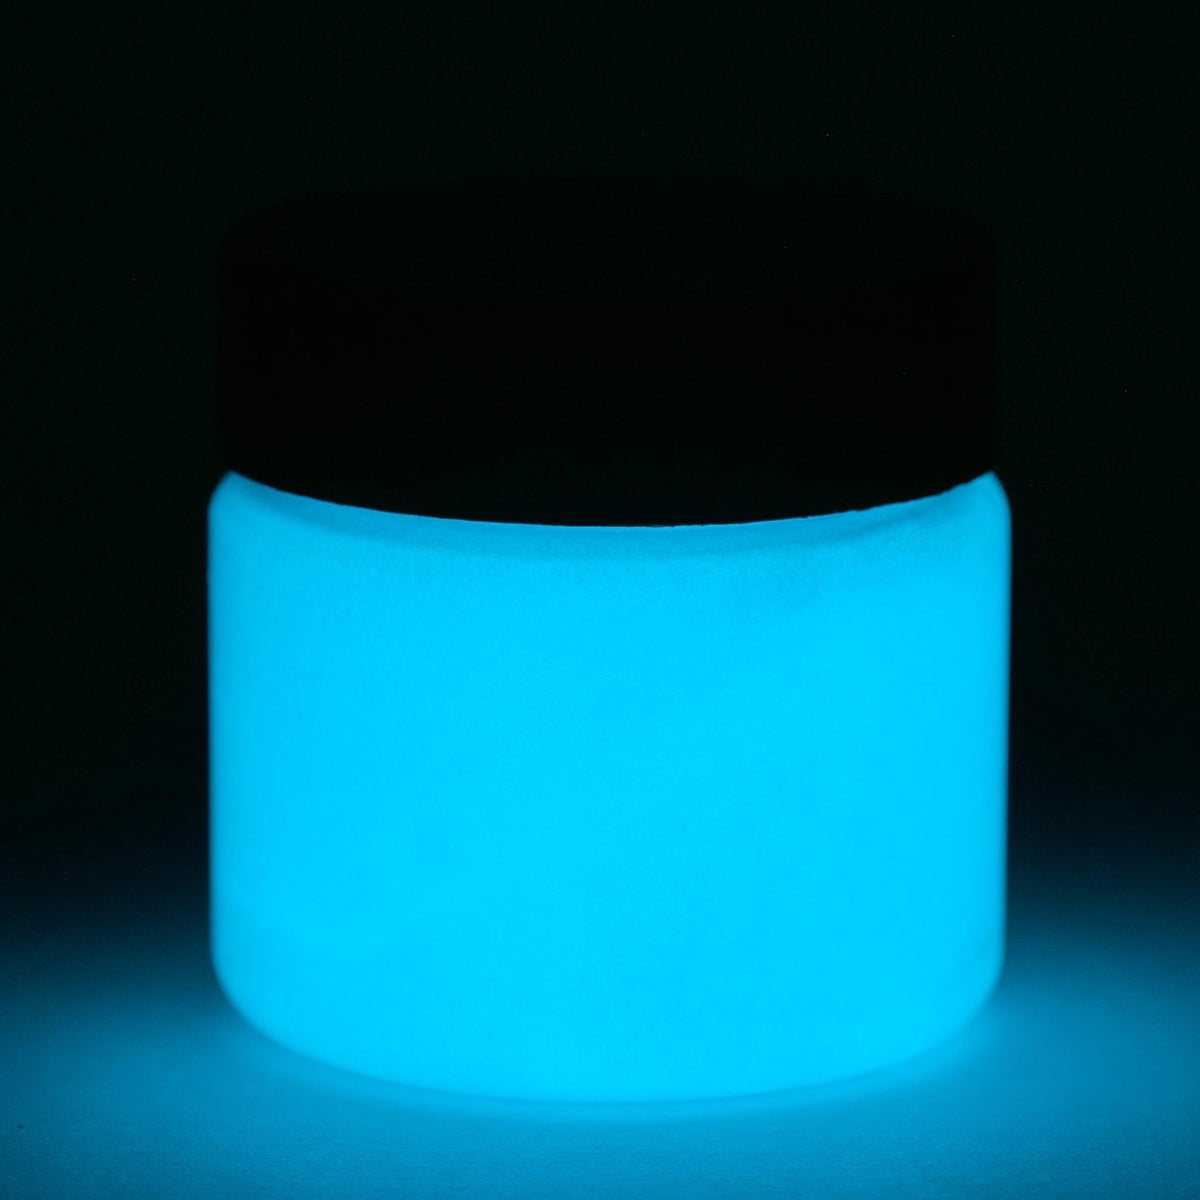 glow in the dark fluorescent blue paint uv and glow art n glow